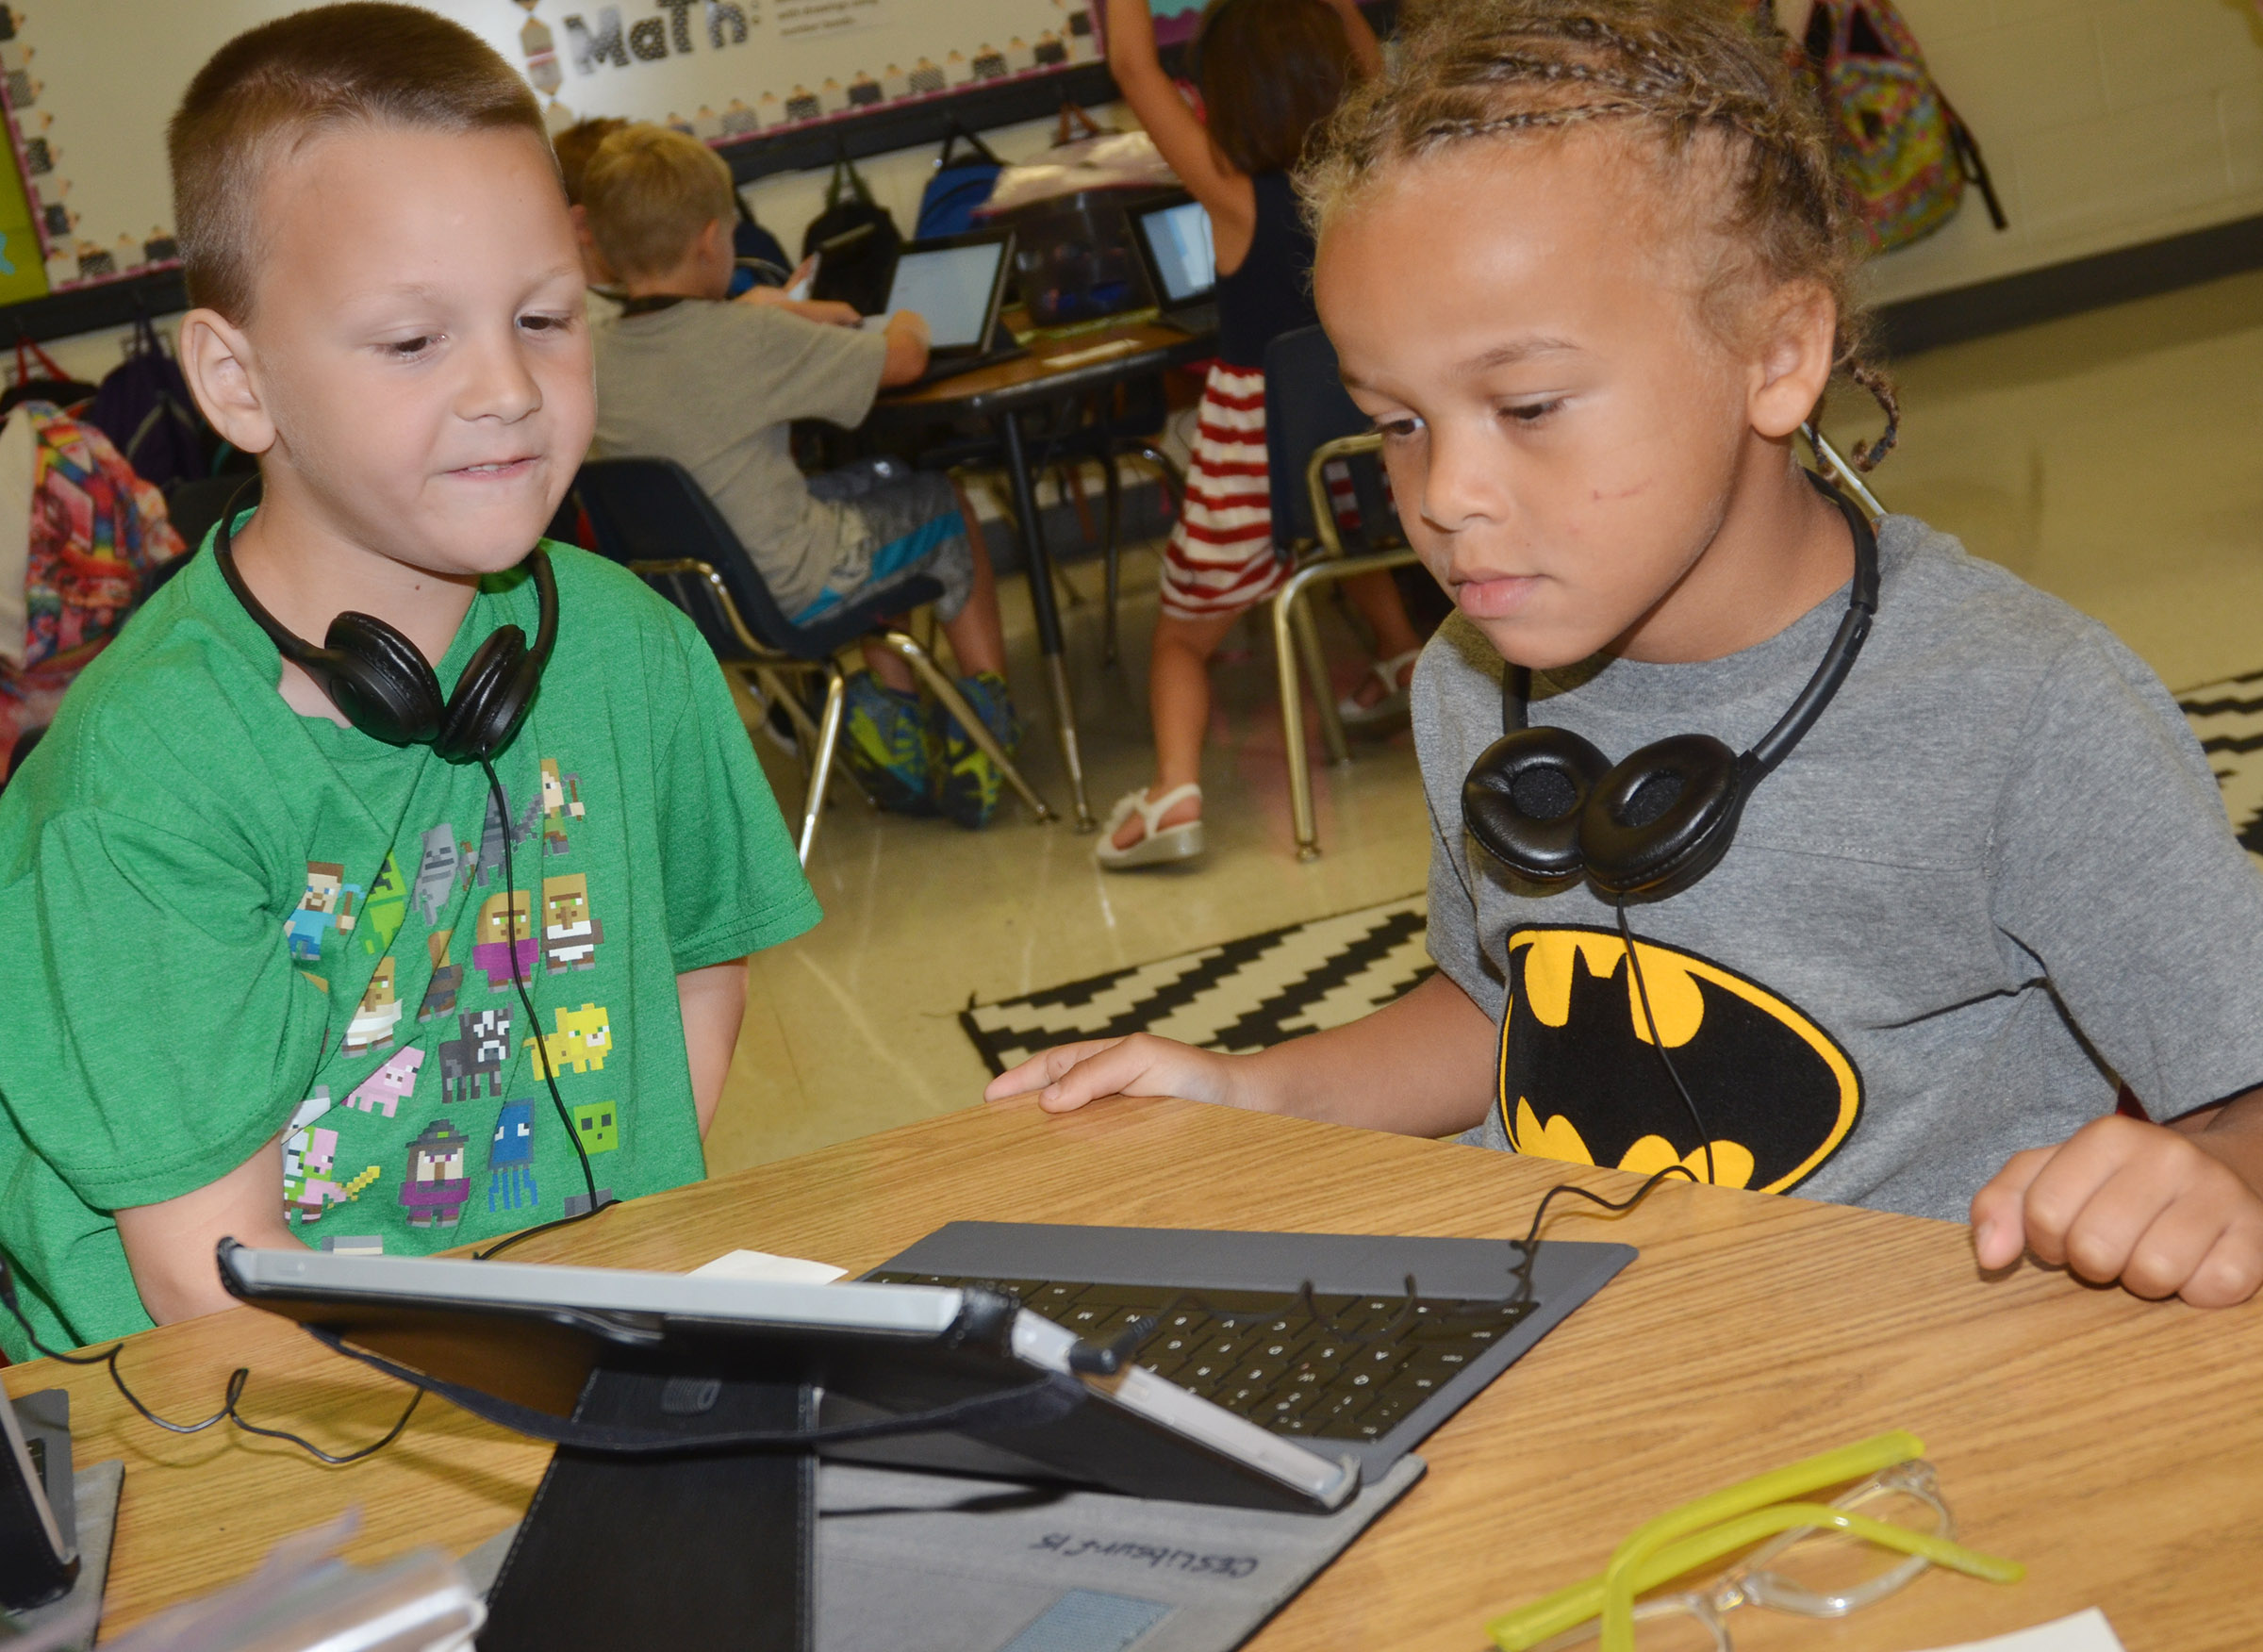 CES first-graders Justice Nelson, at left, and Dyra Welch log on to their tablets.